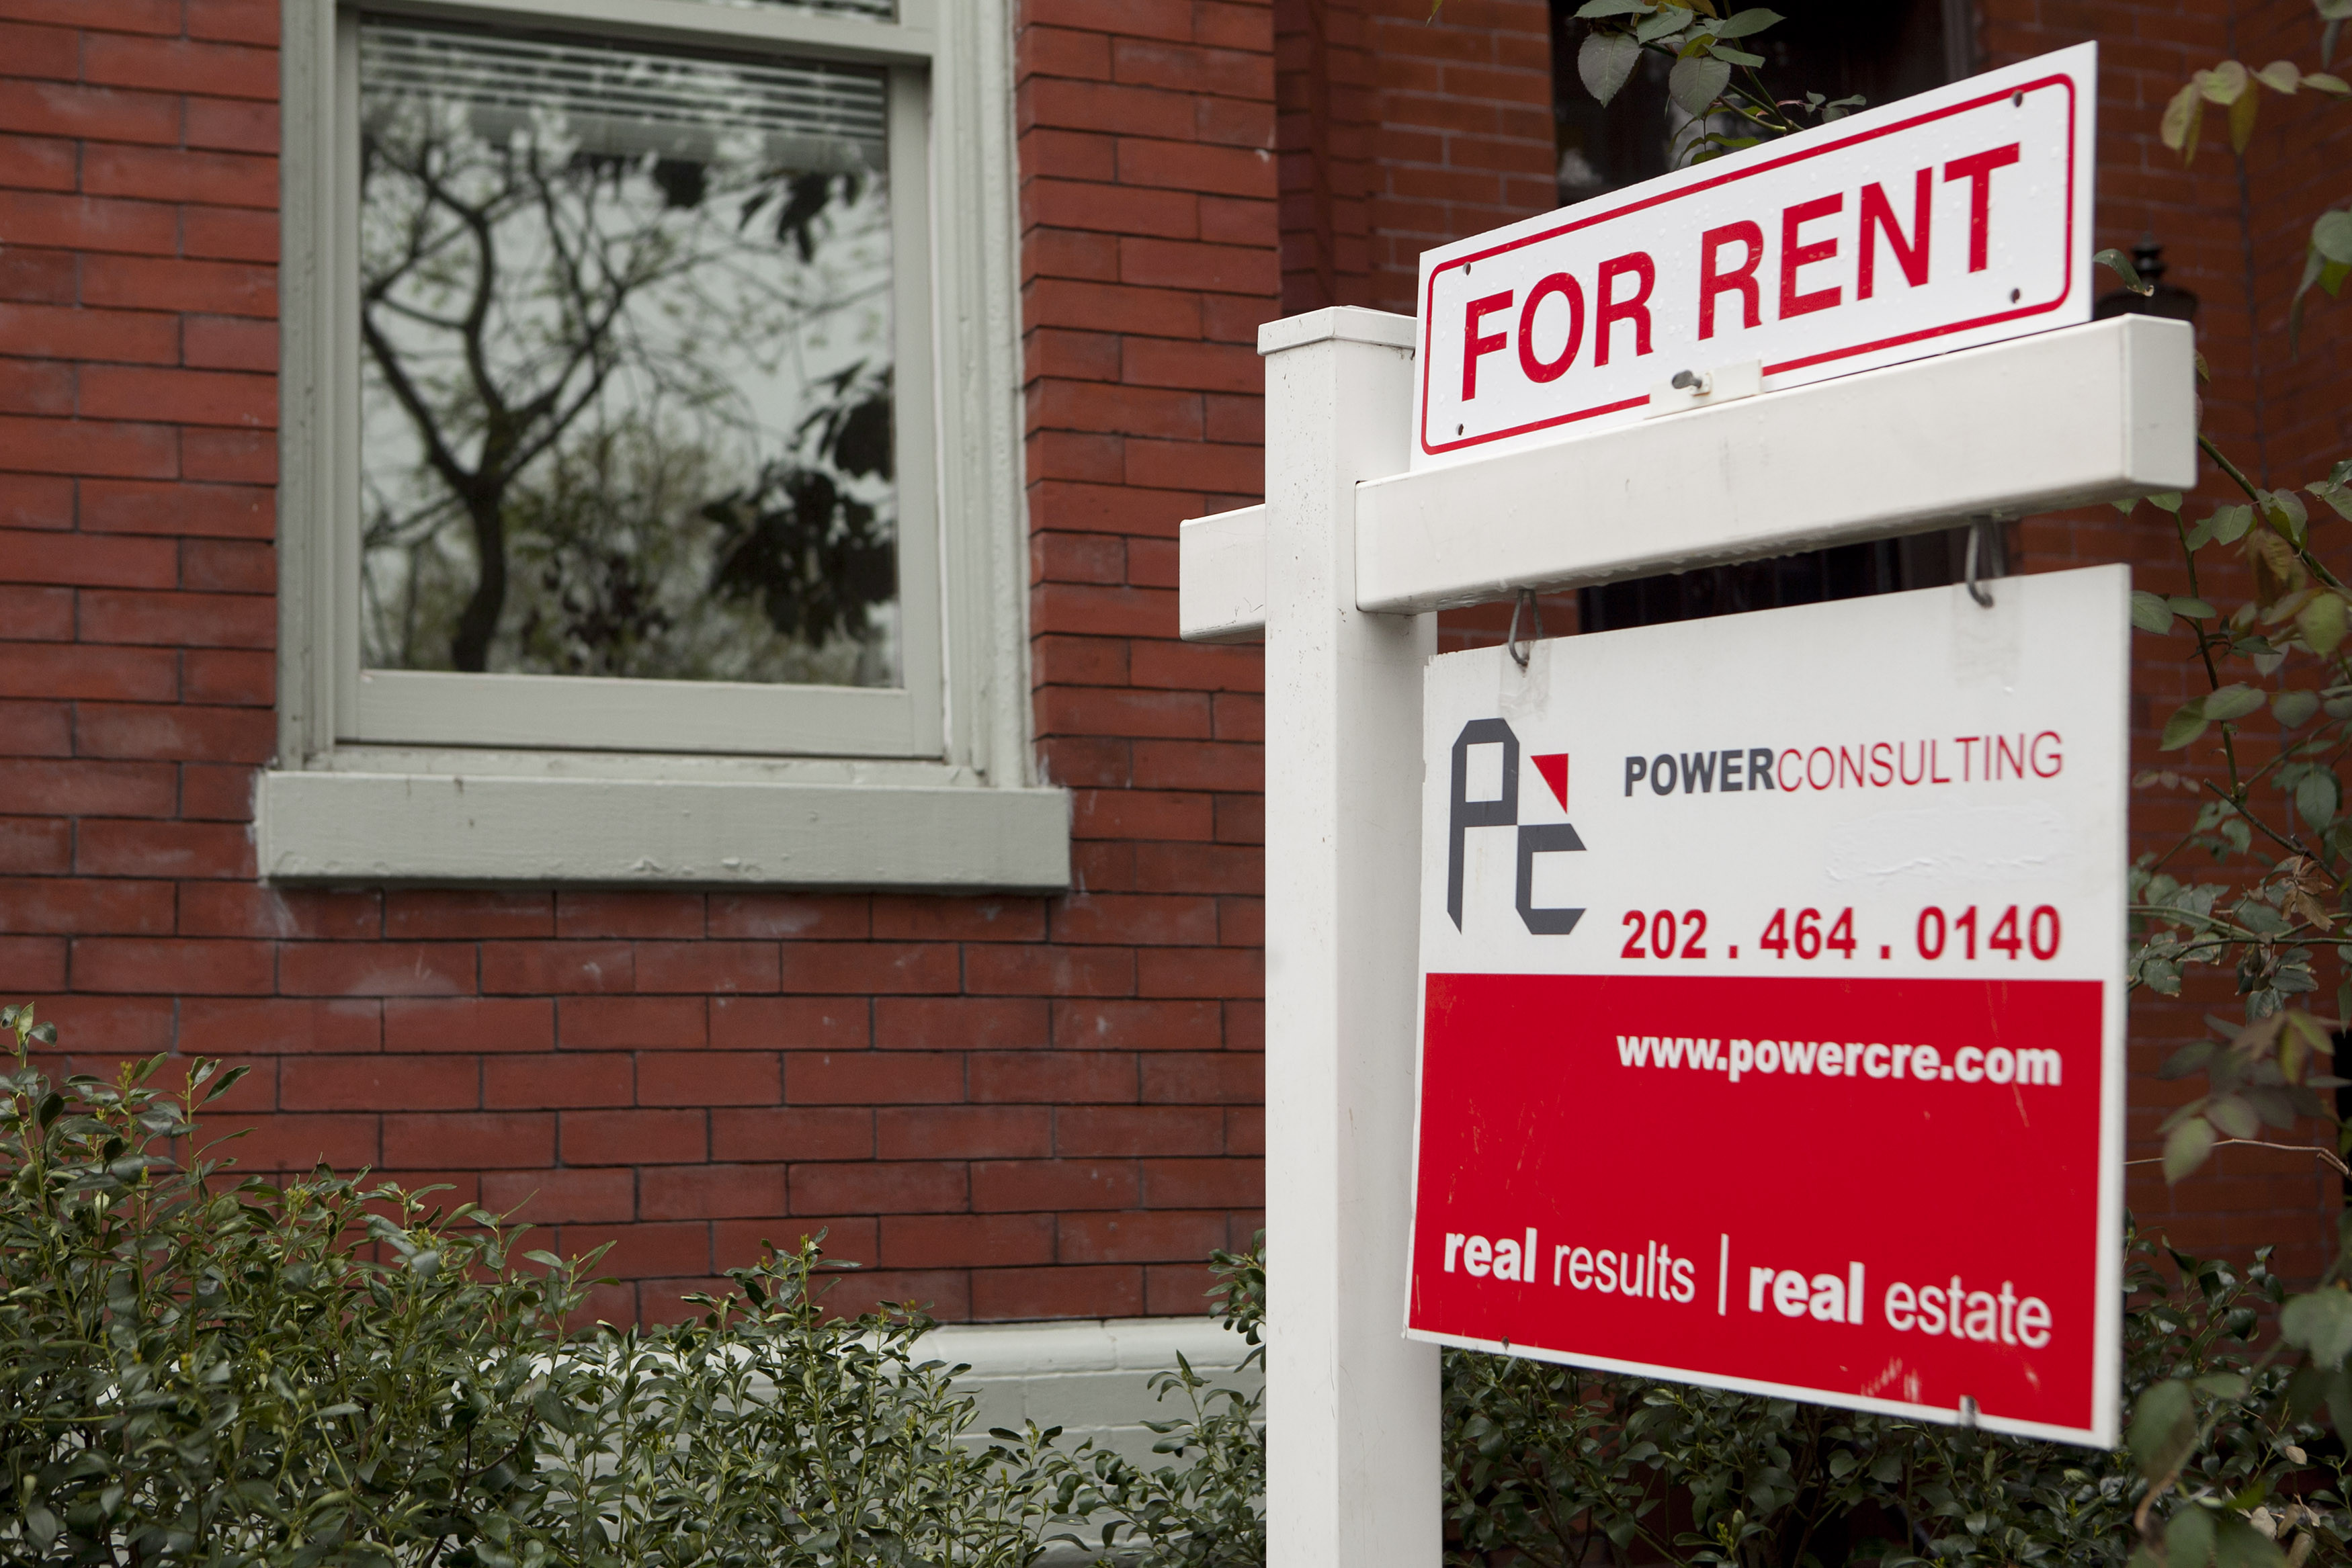 A for rent sign stands in front of a row house in the Logan Circle neighborhood of Washington, D.C.